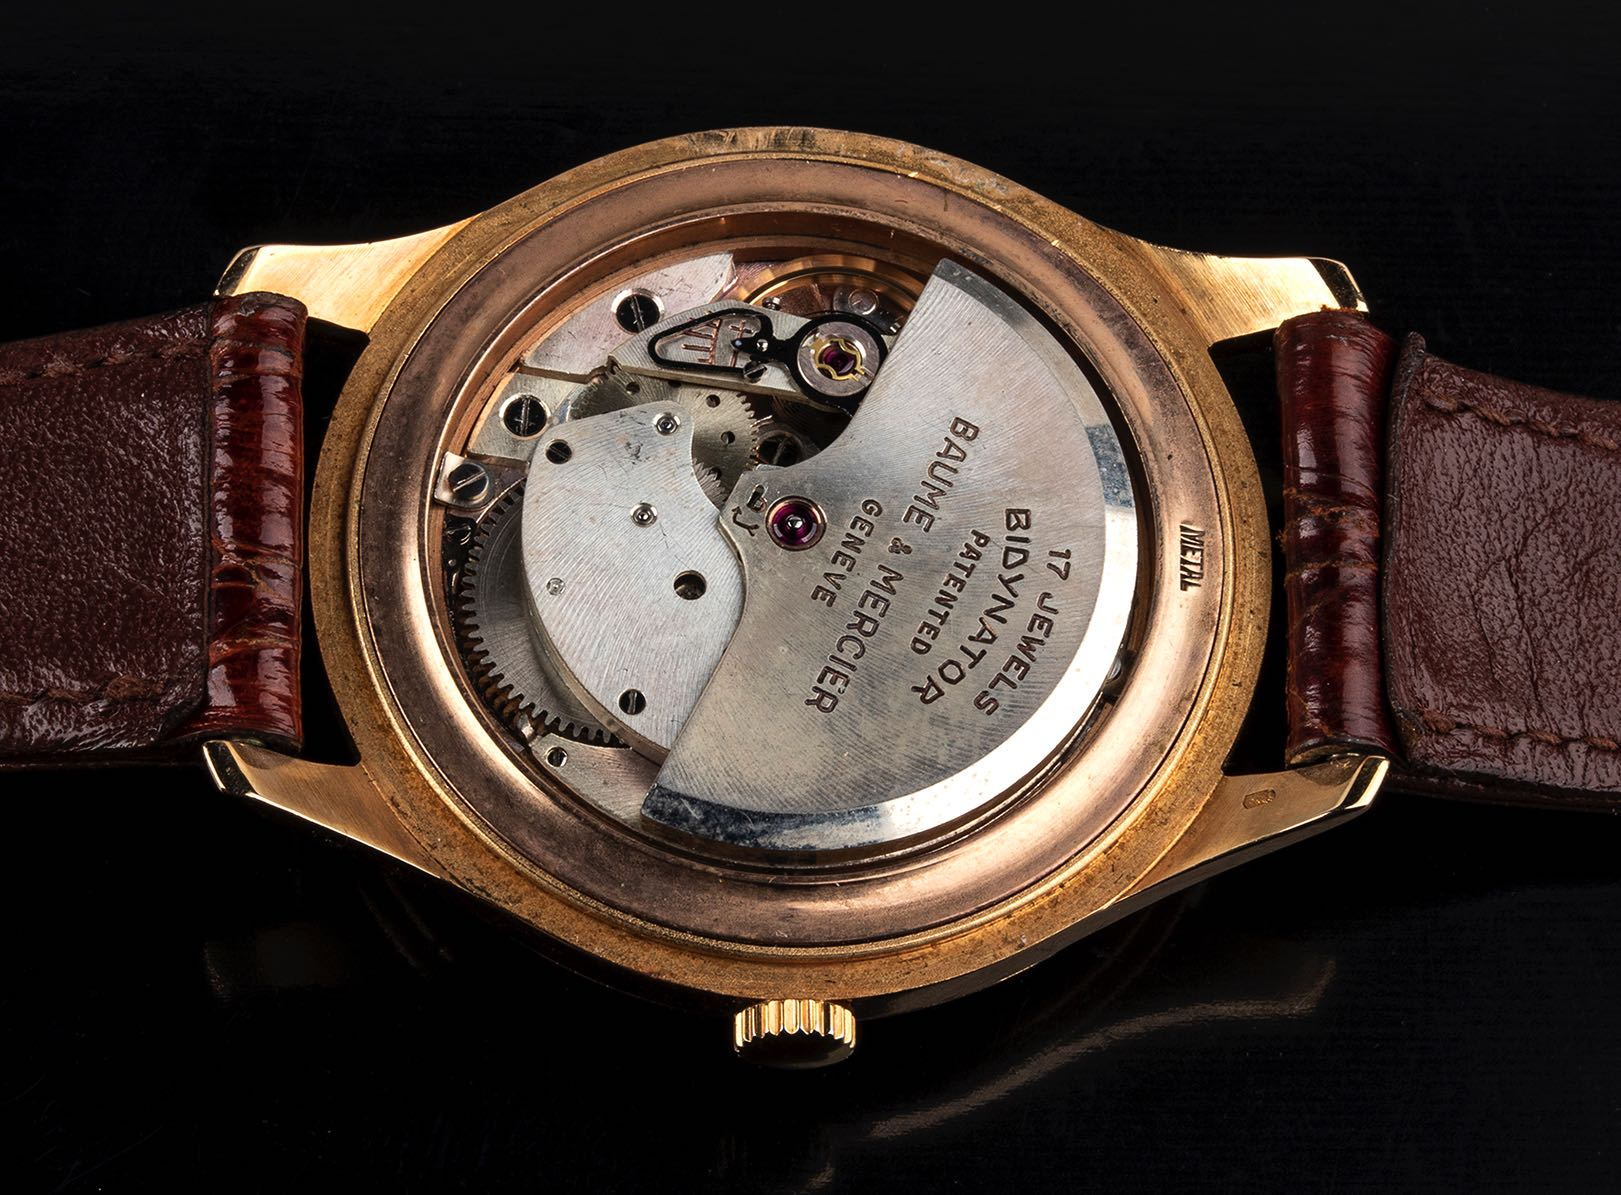 Baume et Mercier, 18 kt gold, Bubble Back Look, 50' - Image 2 of 4